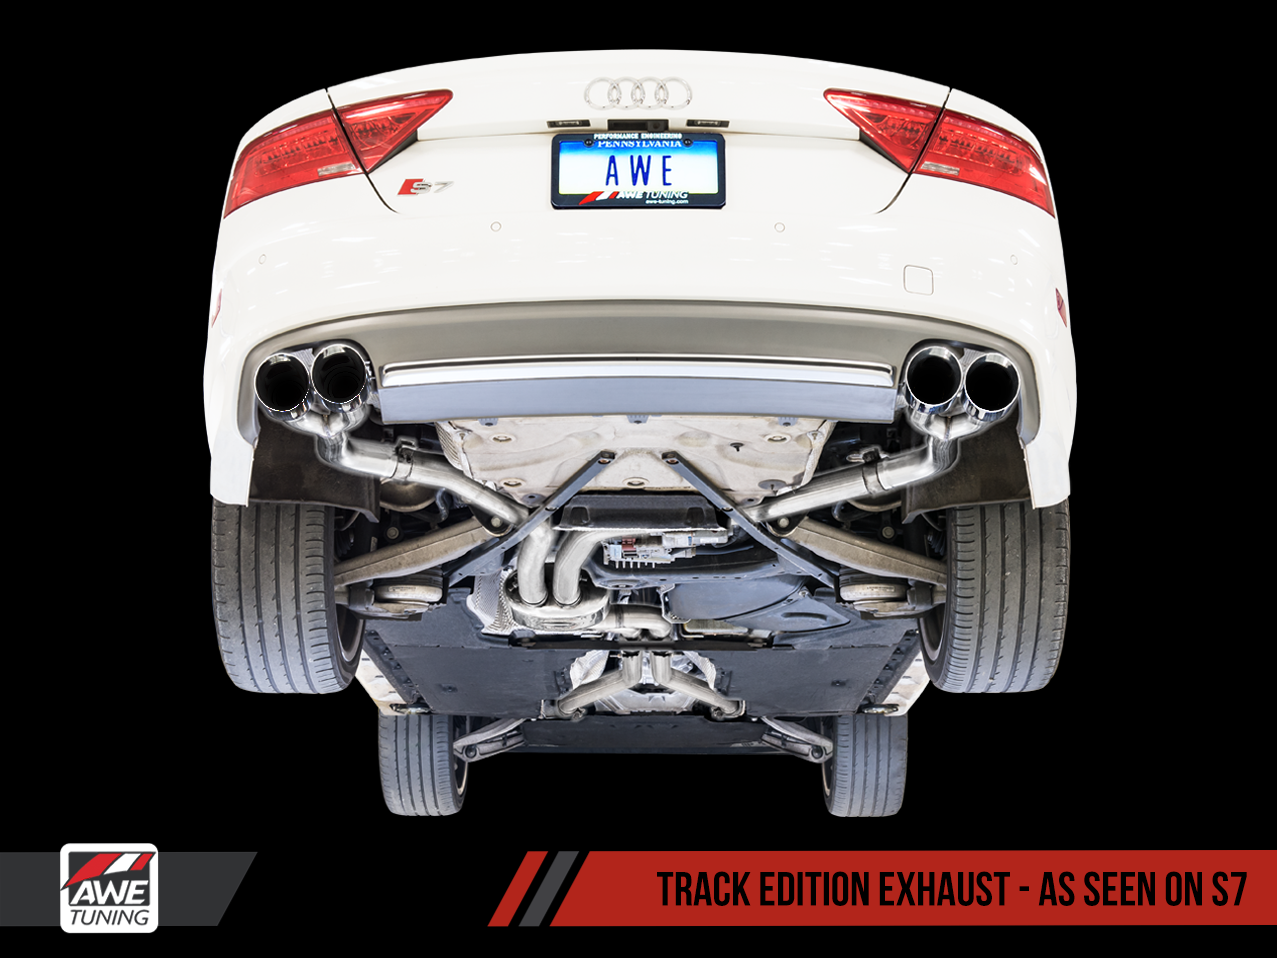 Awe Tuning Track Edition Exhaust For Audi S6 4 0t Diamond Black Tips Etektuning Com